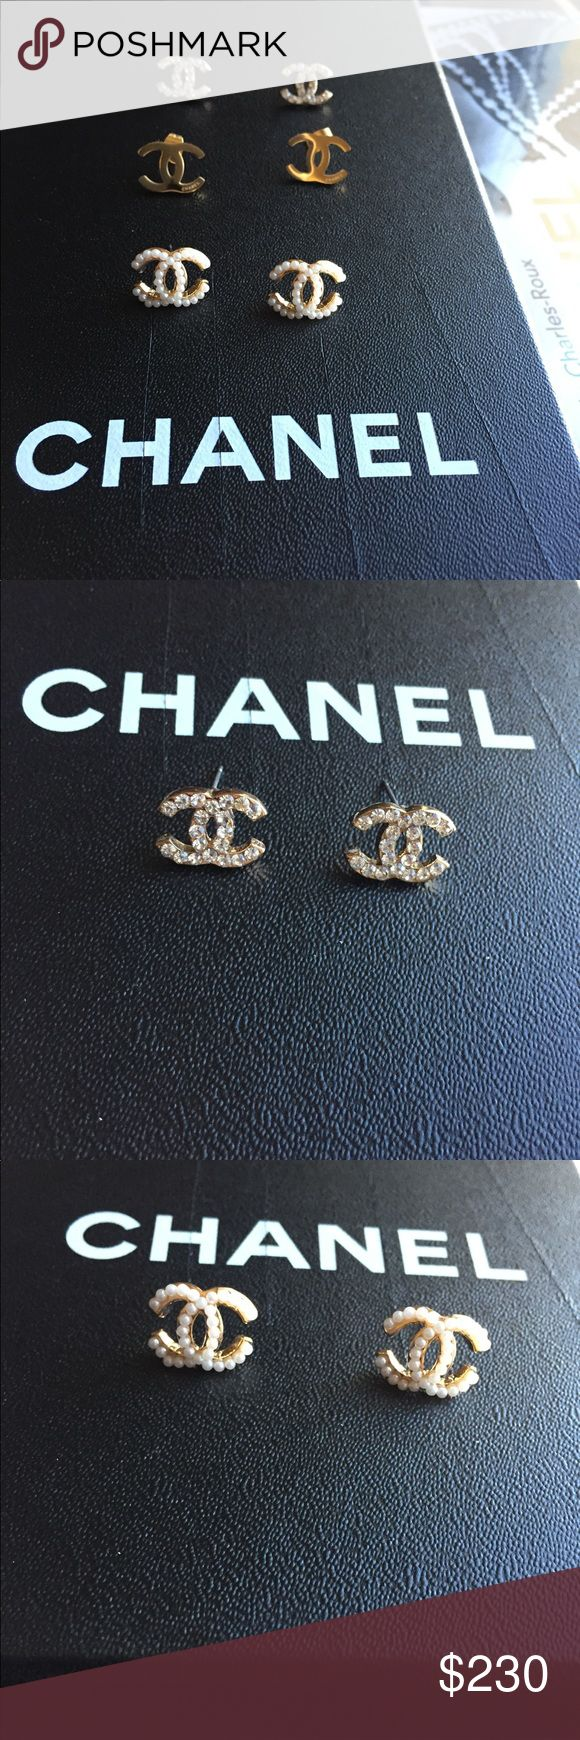 Earrings ❌ Bundle Deal Alert❌.  Price is for all 3 pair. Will not be able to separate.  If purchased tonight they will go out in the morning. Post office run in morning sell on other sites multiple orders ready for shipping. CHANEL Accessories Hair Accessories